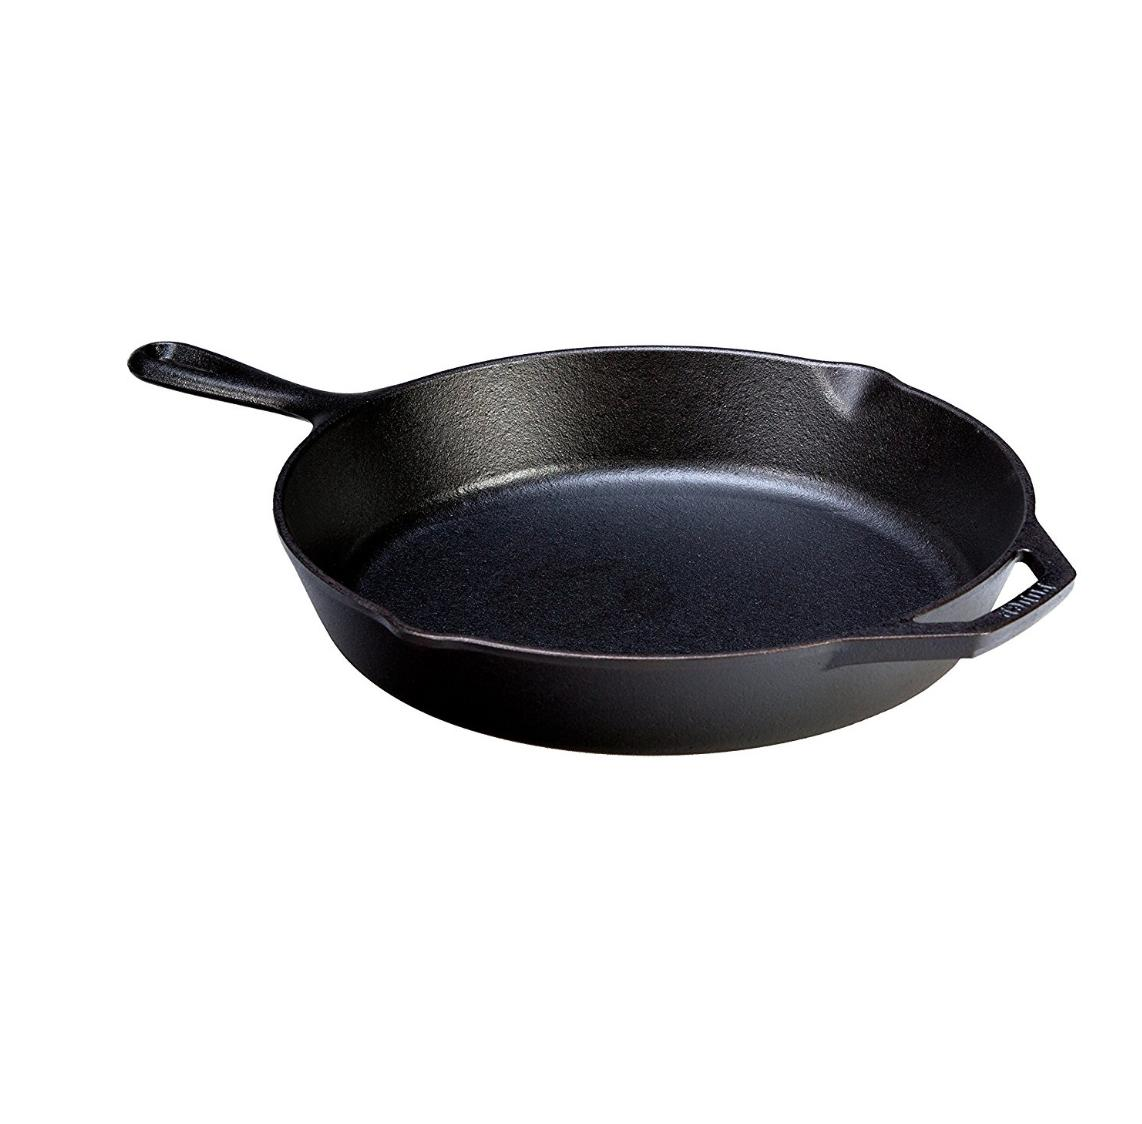 Lodge Pre-Seasoned 12 Inch. Cast Iron Skillet Frying Pan Wit